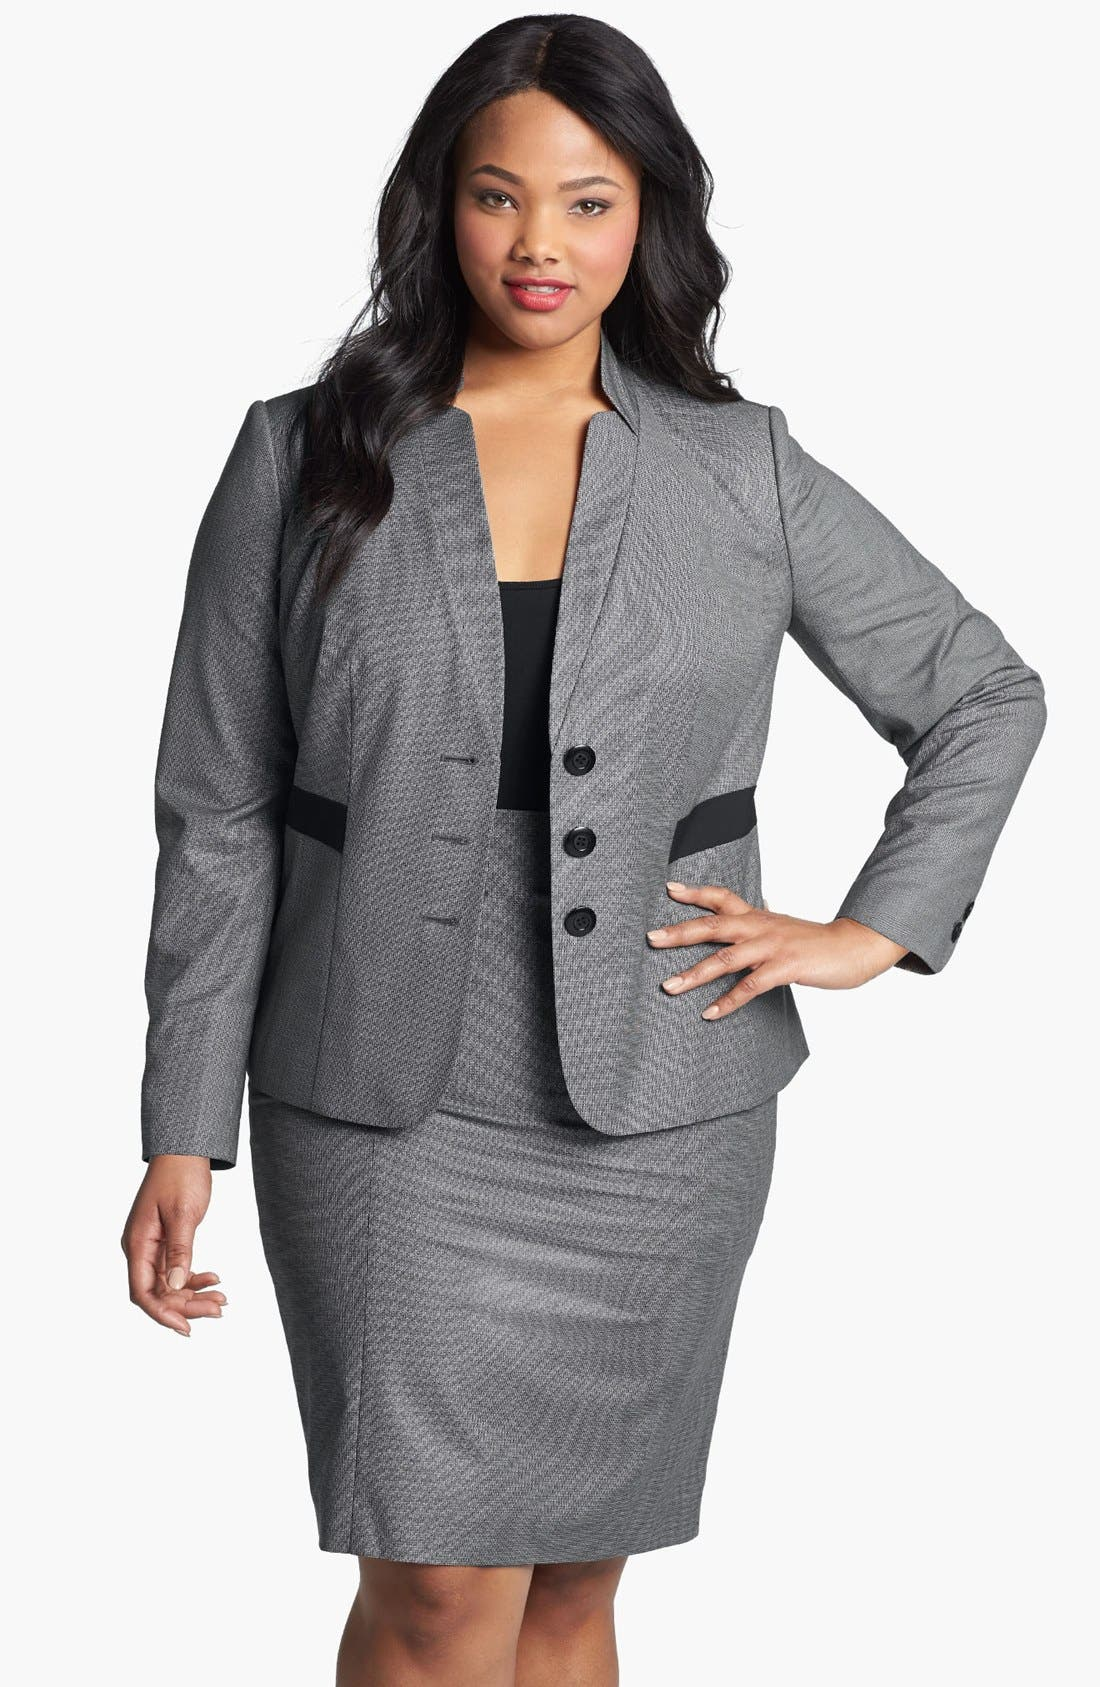 Alternate Image 1 Selected - Sejour 'Marcy' Suit Jacket (Plus Size)